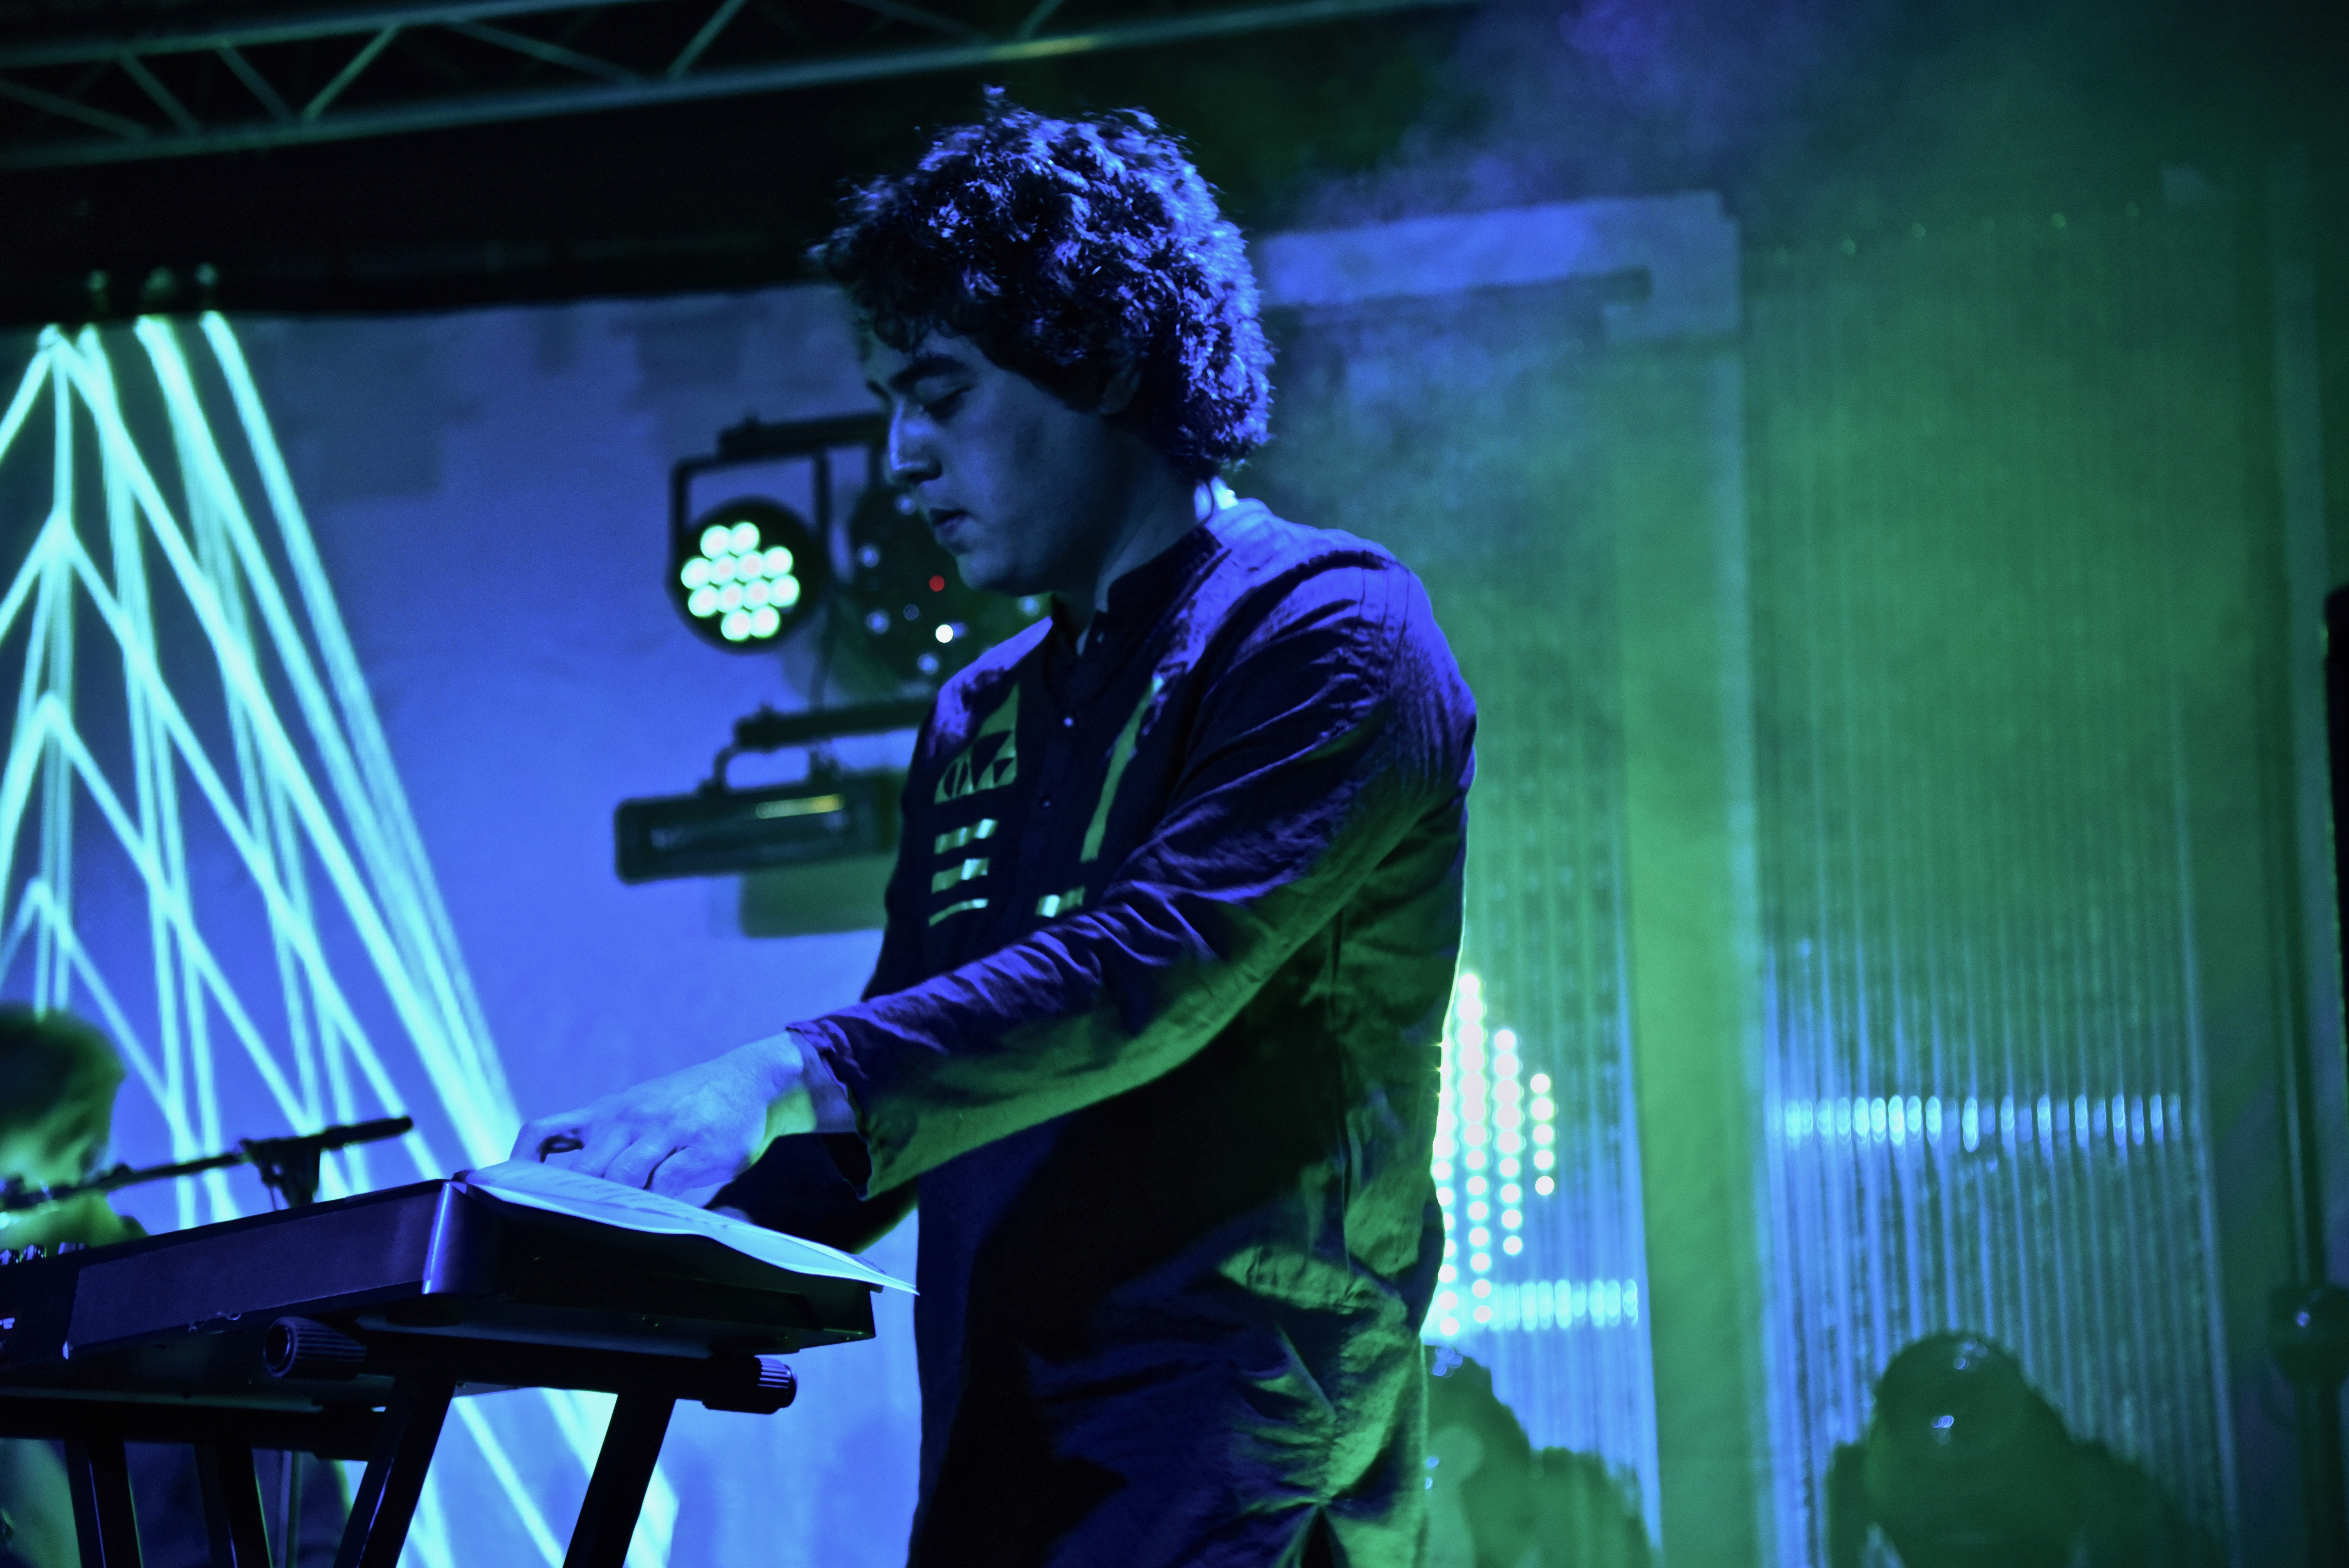 A man with curly hair playing keyboard under blue lights.